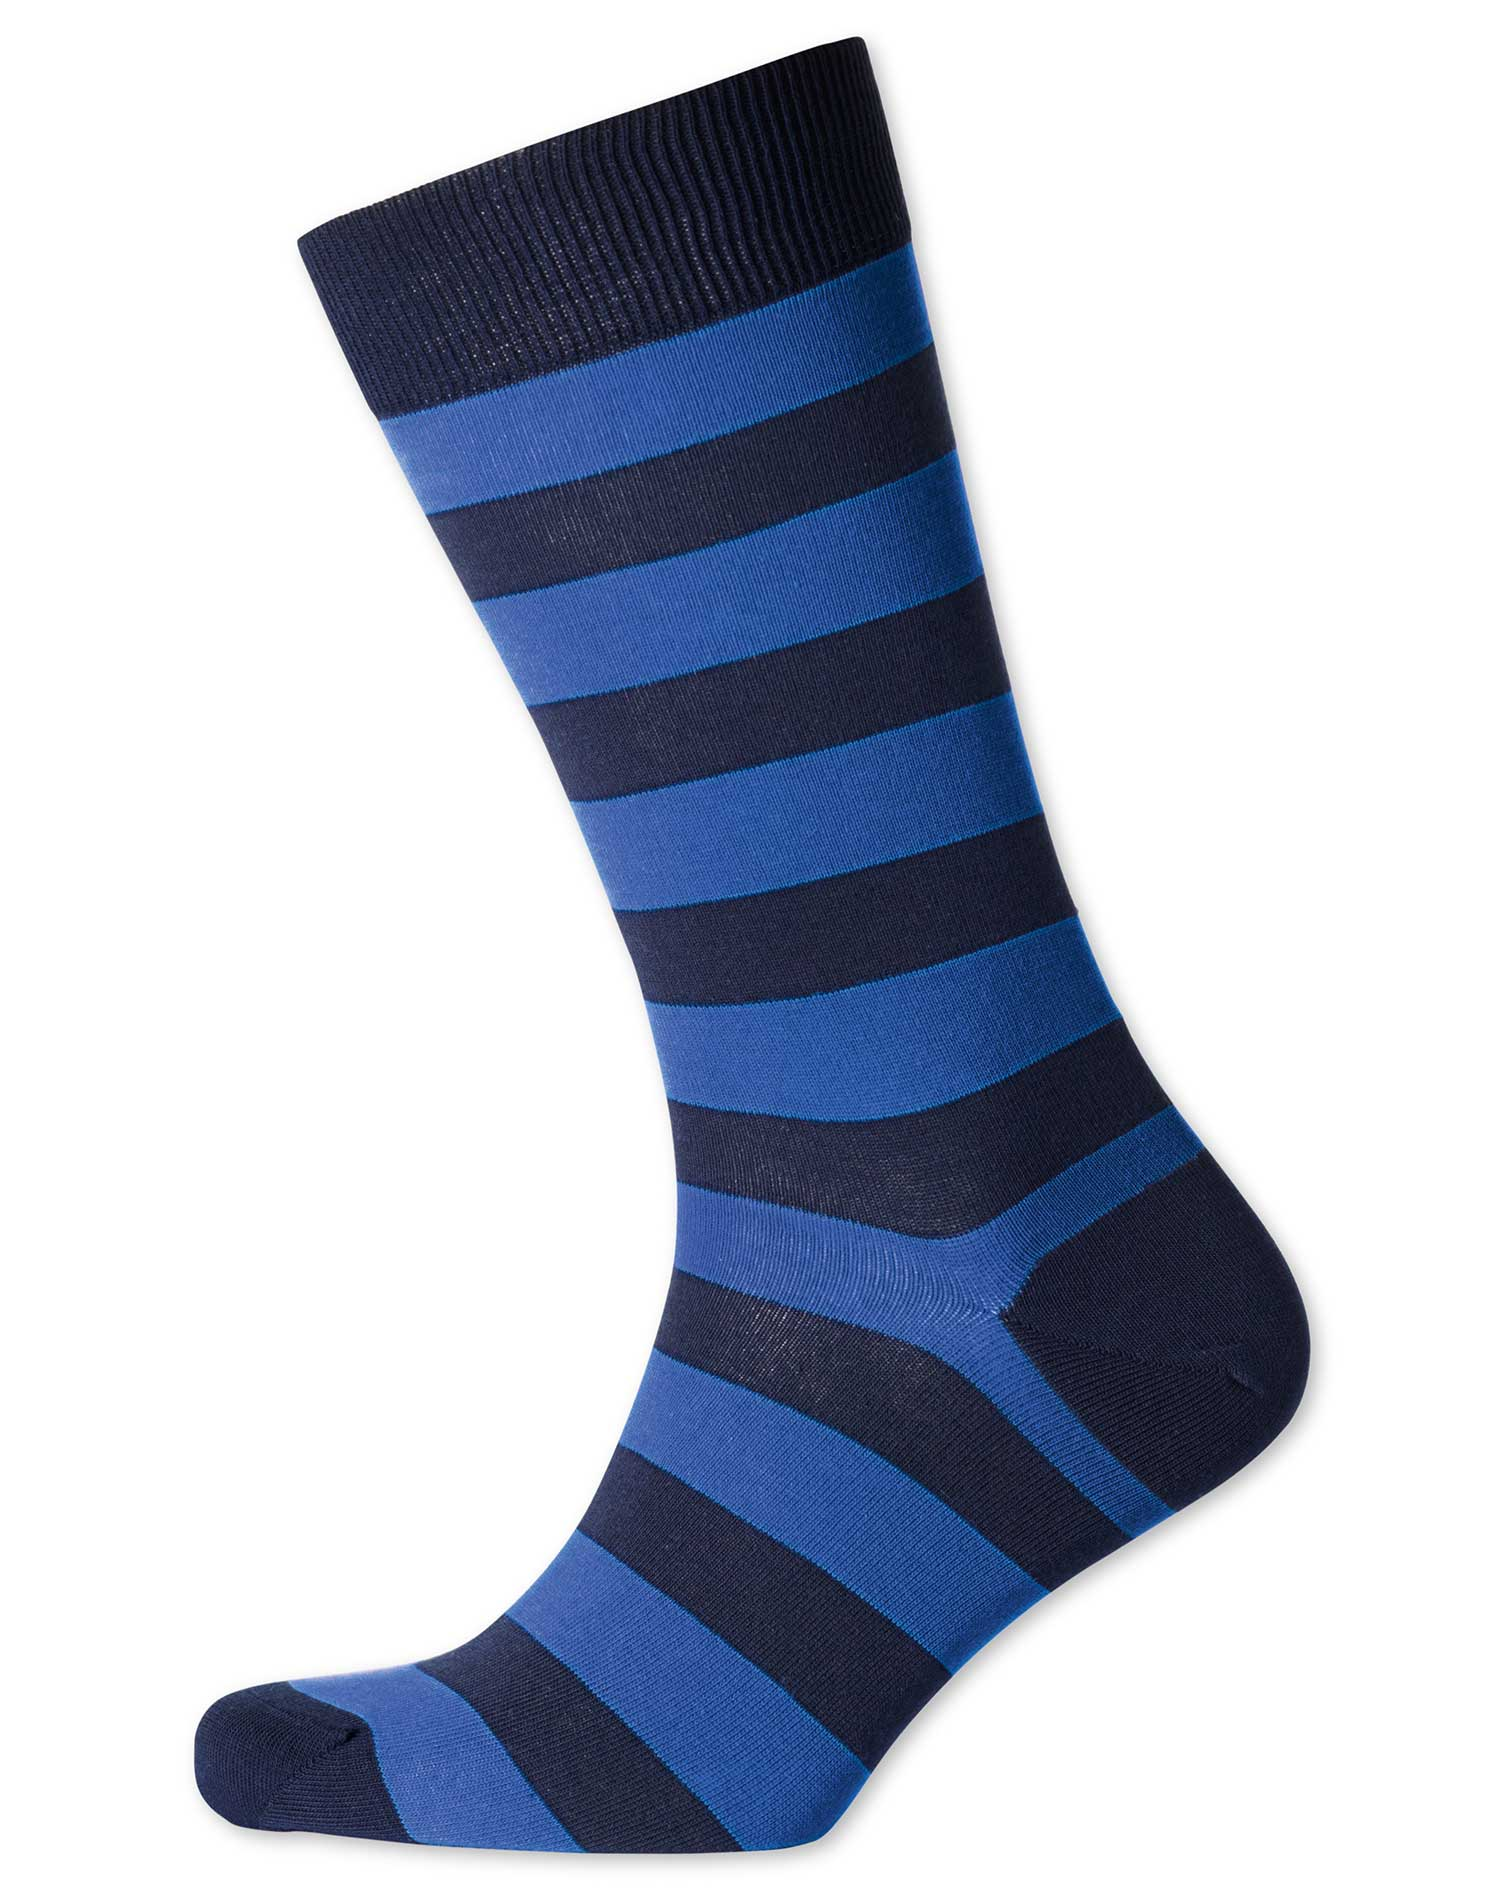 Navy and Royal Wide Stripe Socks Size Large by Charles Tyrwhitt